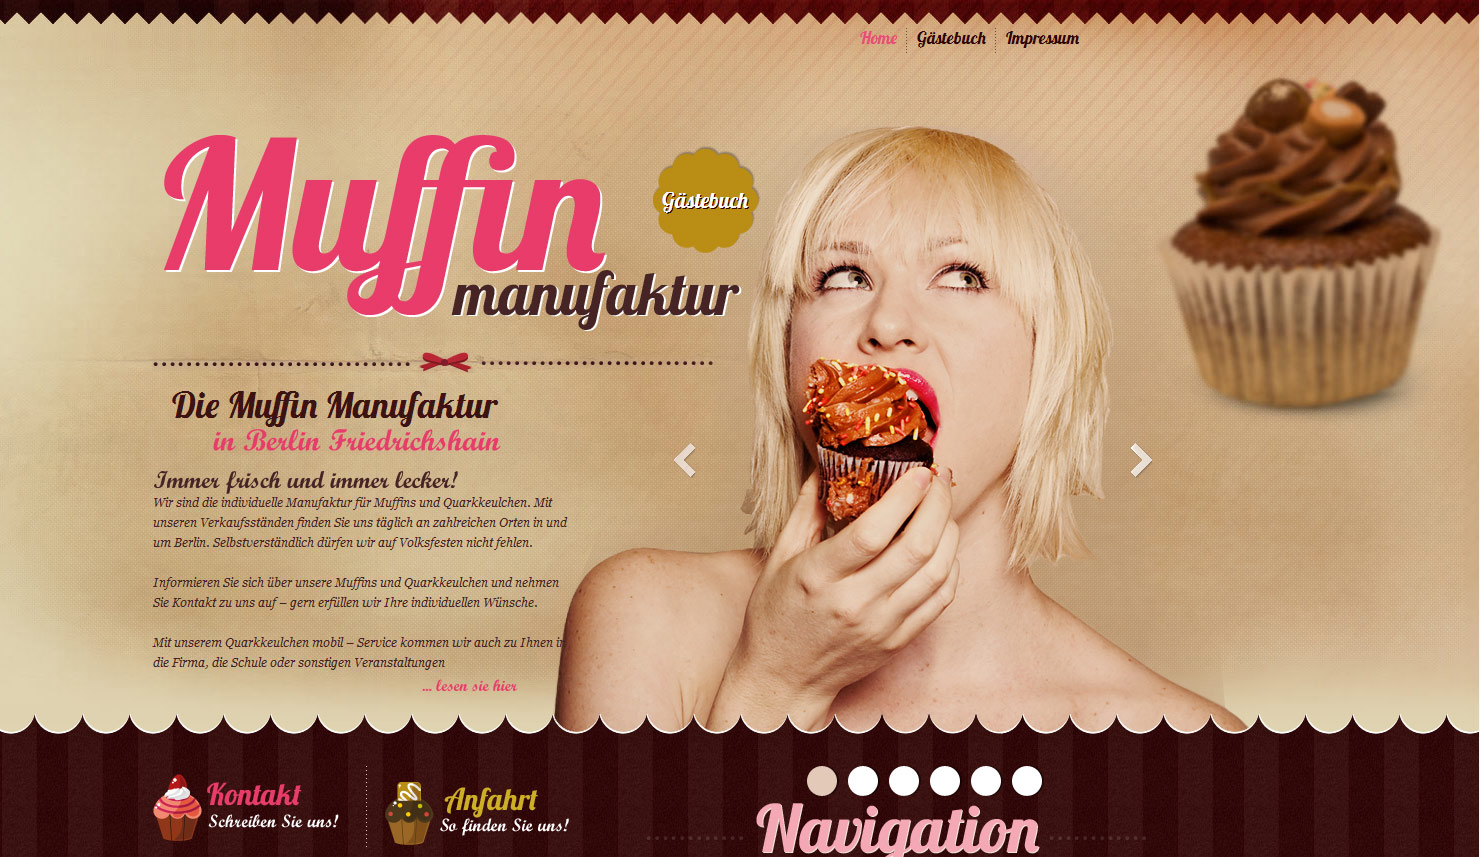 Muffin Manufaktur Website Screenshot